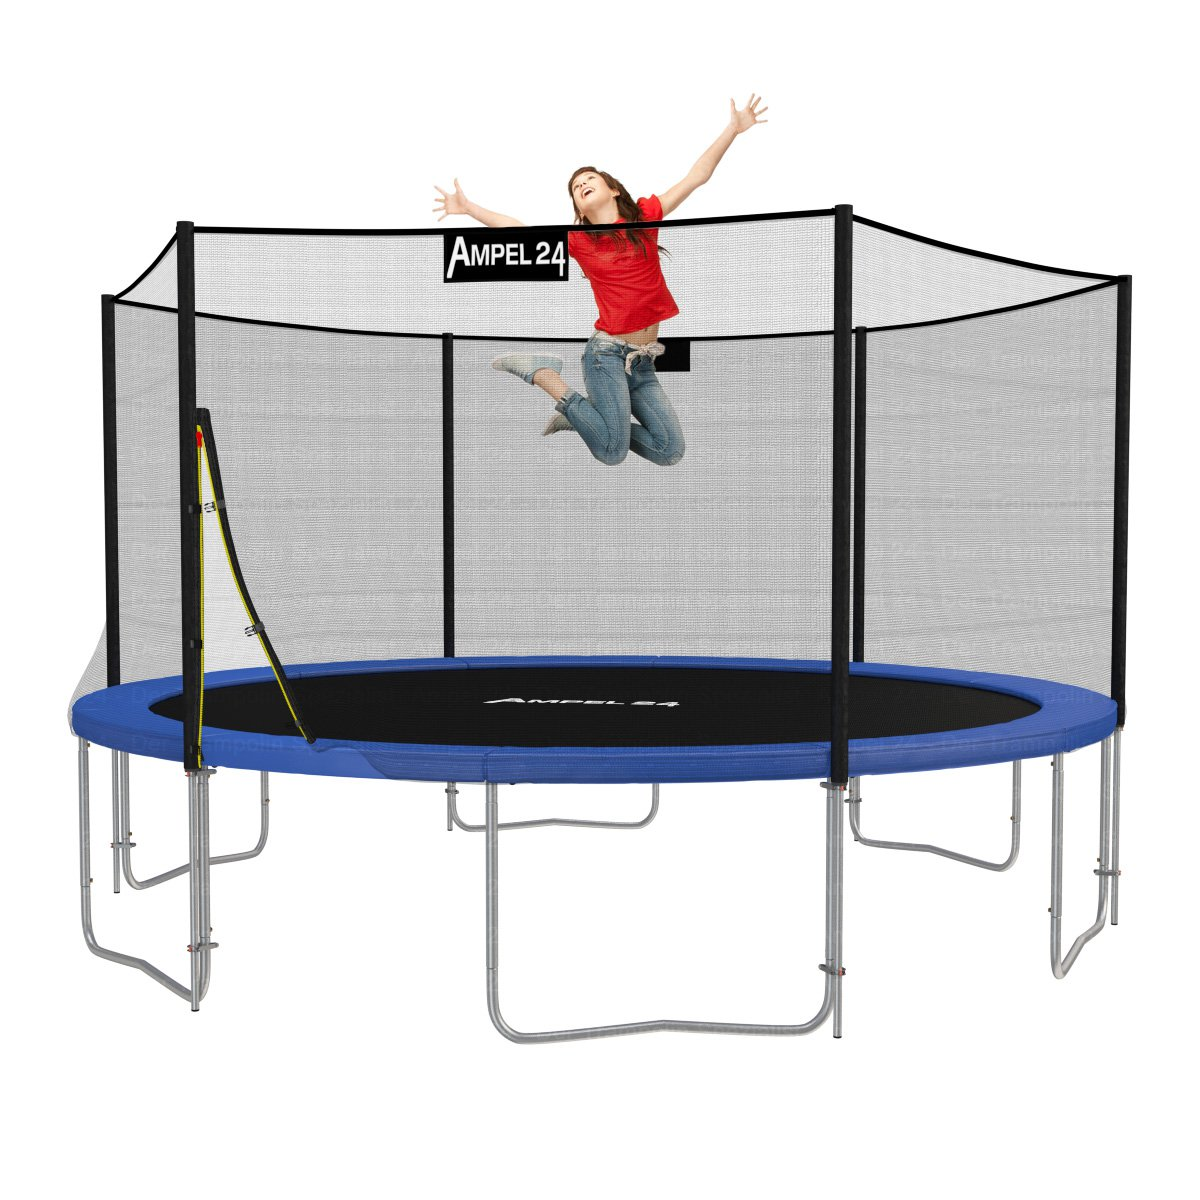 original ampel 24 trampolin 430 cm mit netz neuste version 2013 ebay. Black Bedroom Furniture Sets. Home Design Ideas